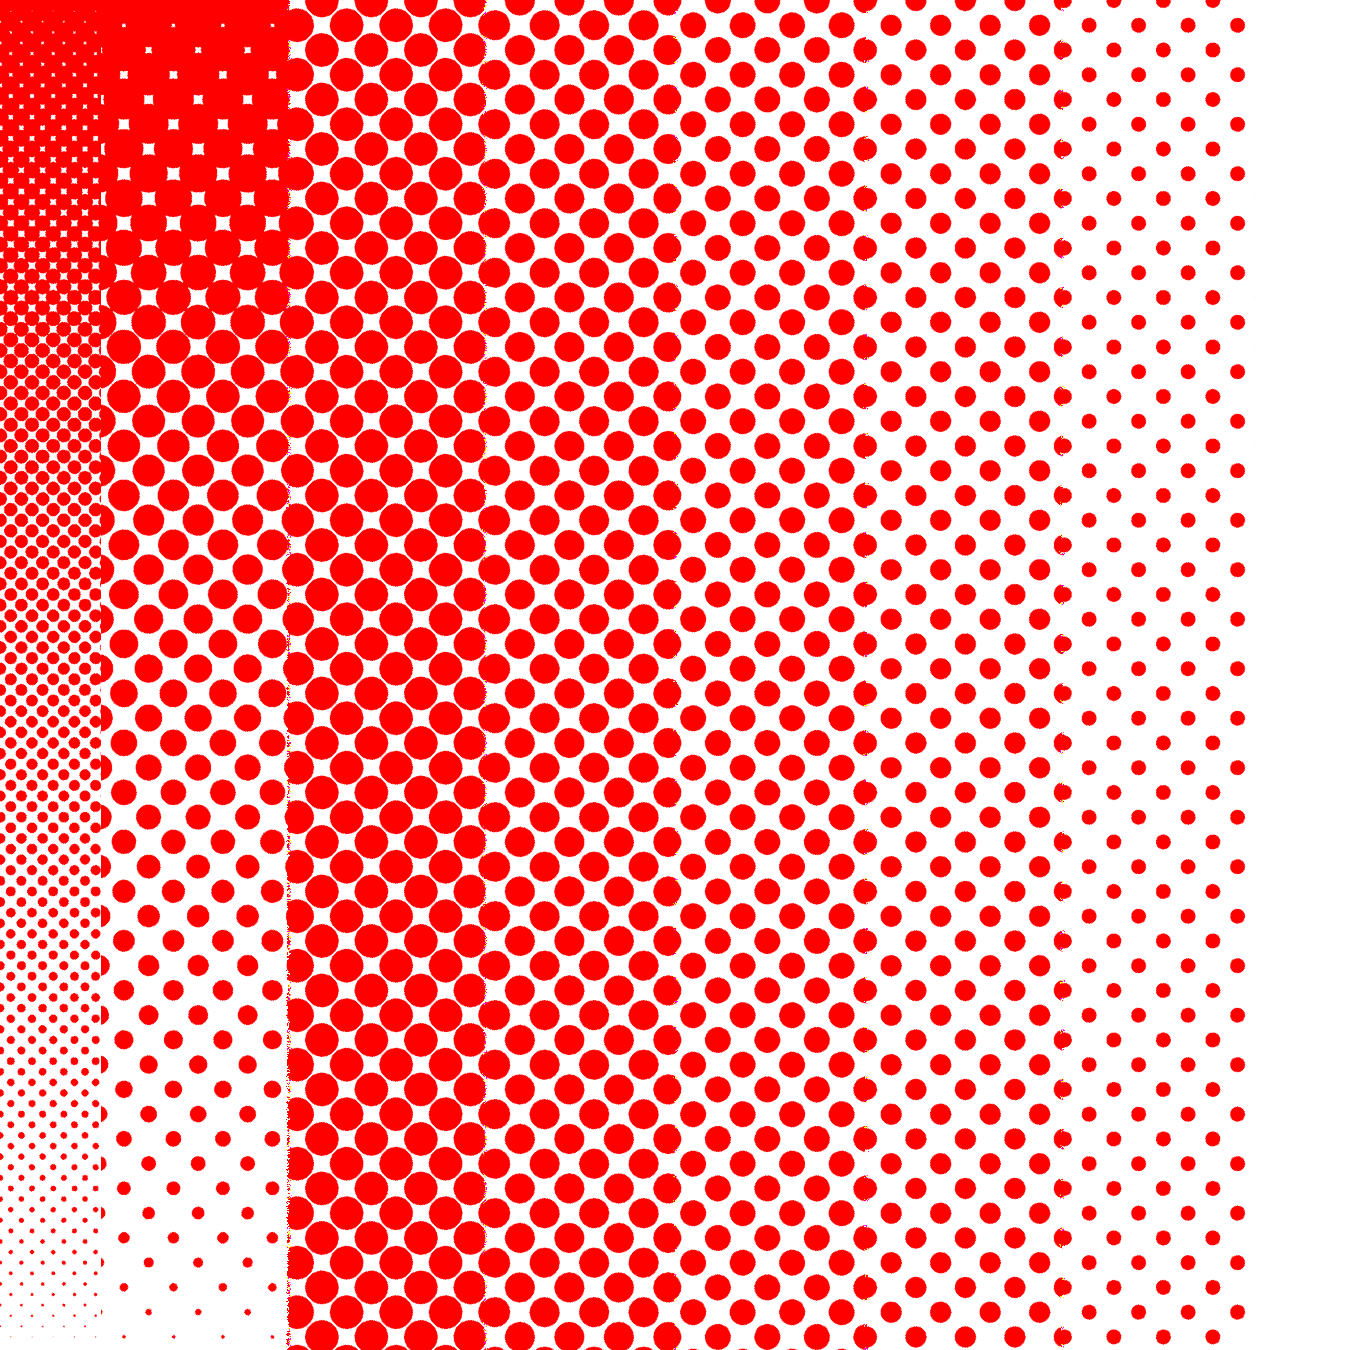 Simple Red Polka Dot Pattern Pack By Mrcentipede On Deviantart Pattern Red Polka Dot Polka Dot Pattern